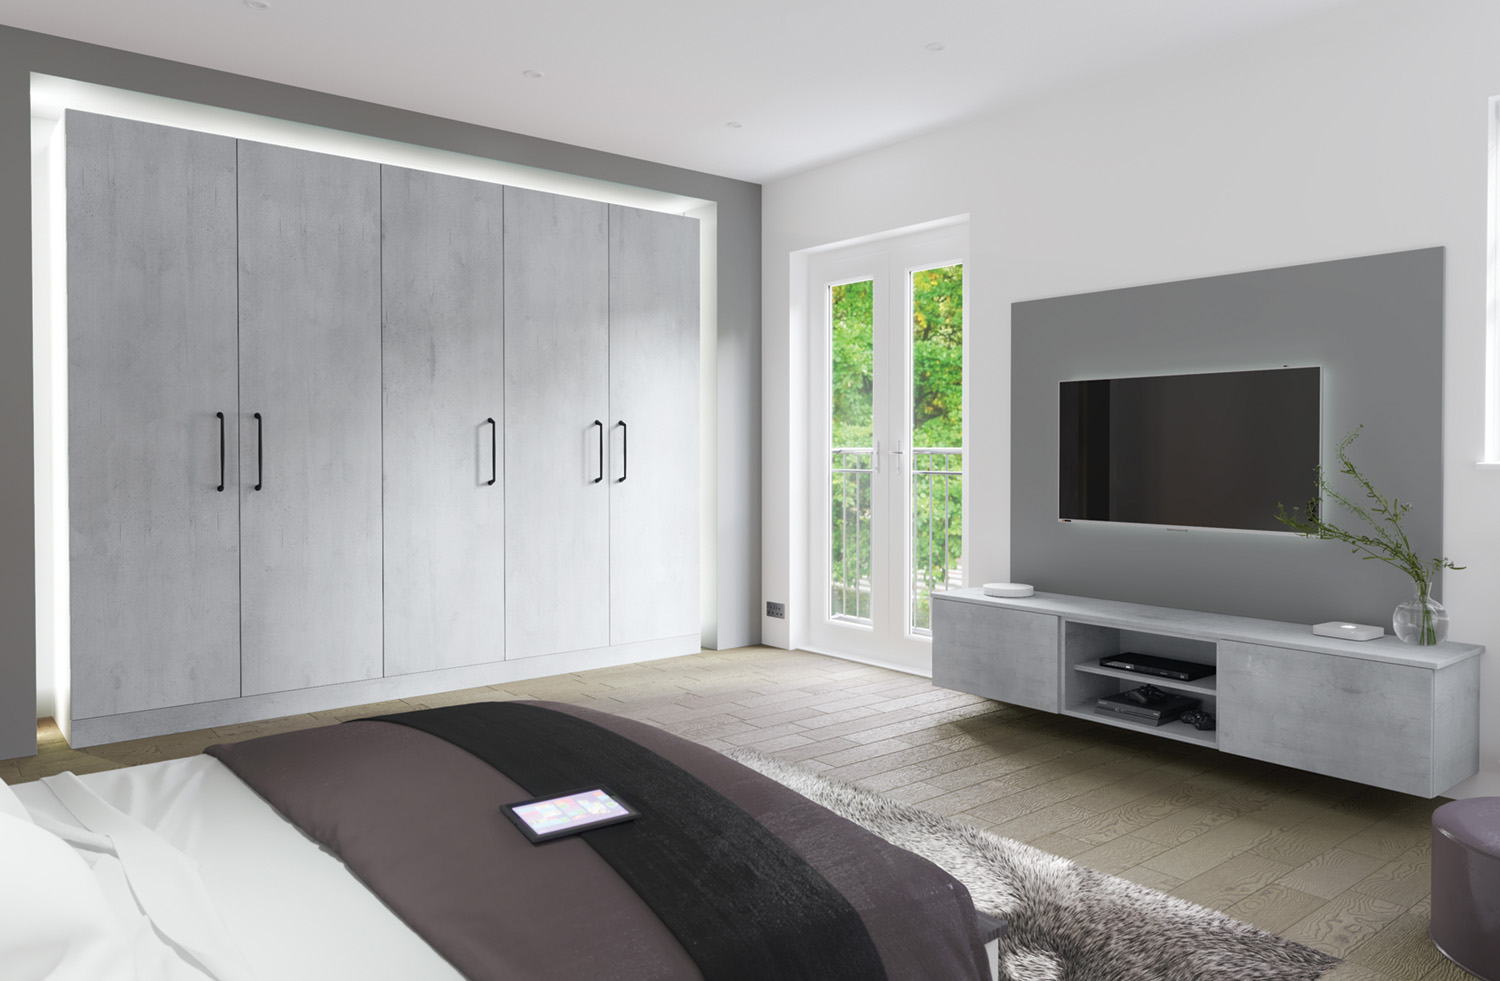 Boston concrete industrial fitted bedroom sunderland made to order for Boston interiors bedroom furniture